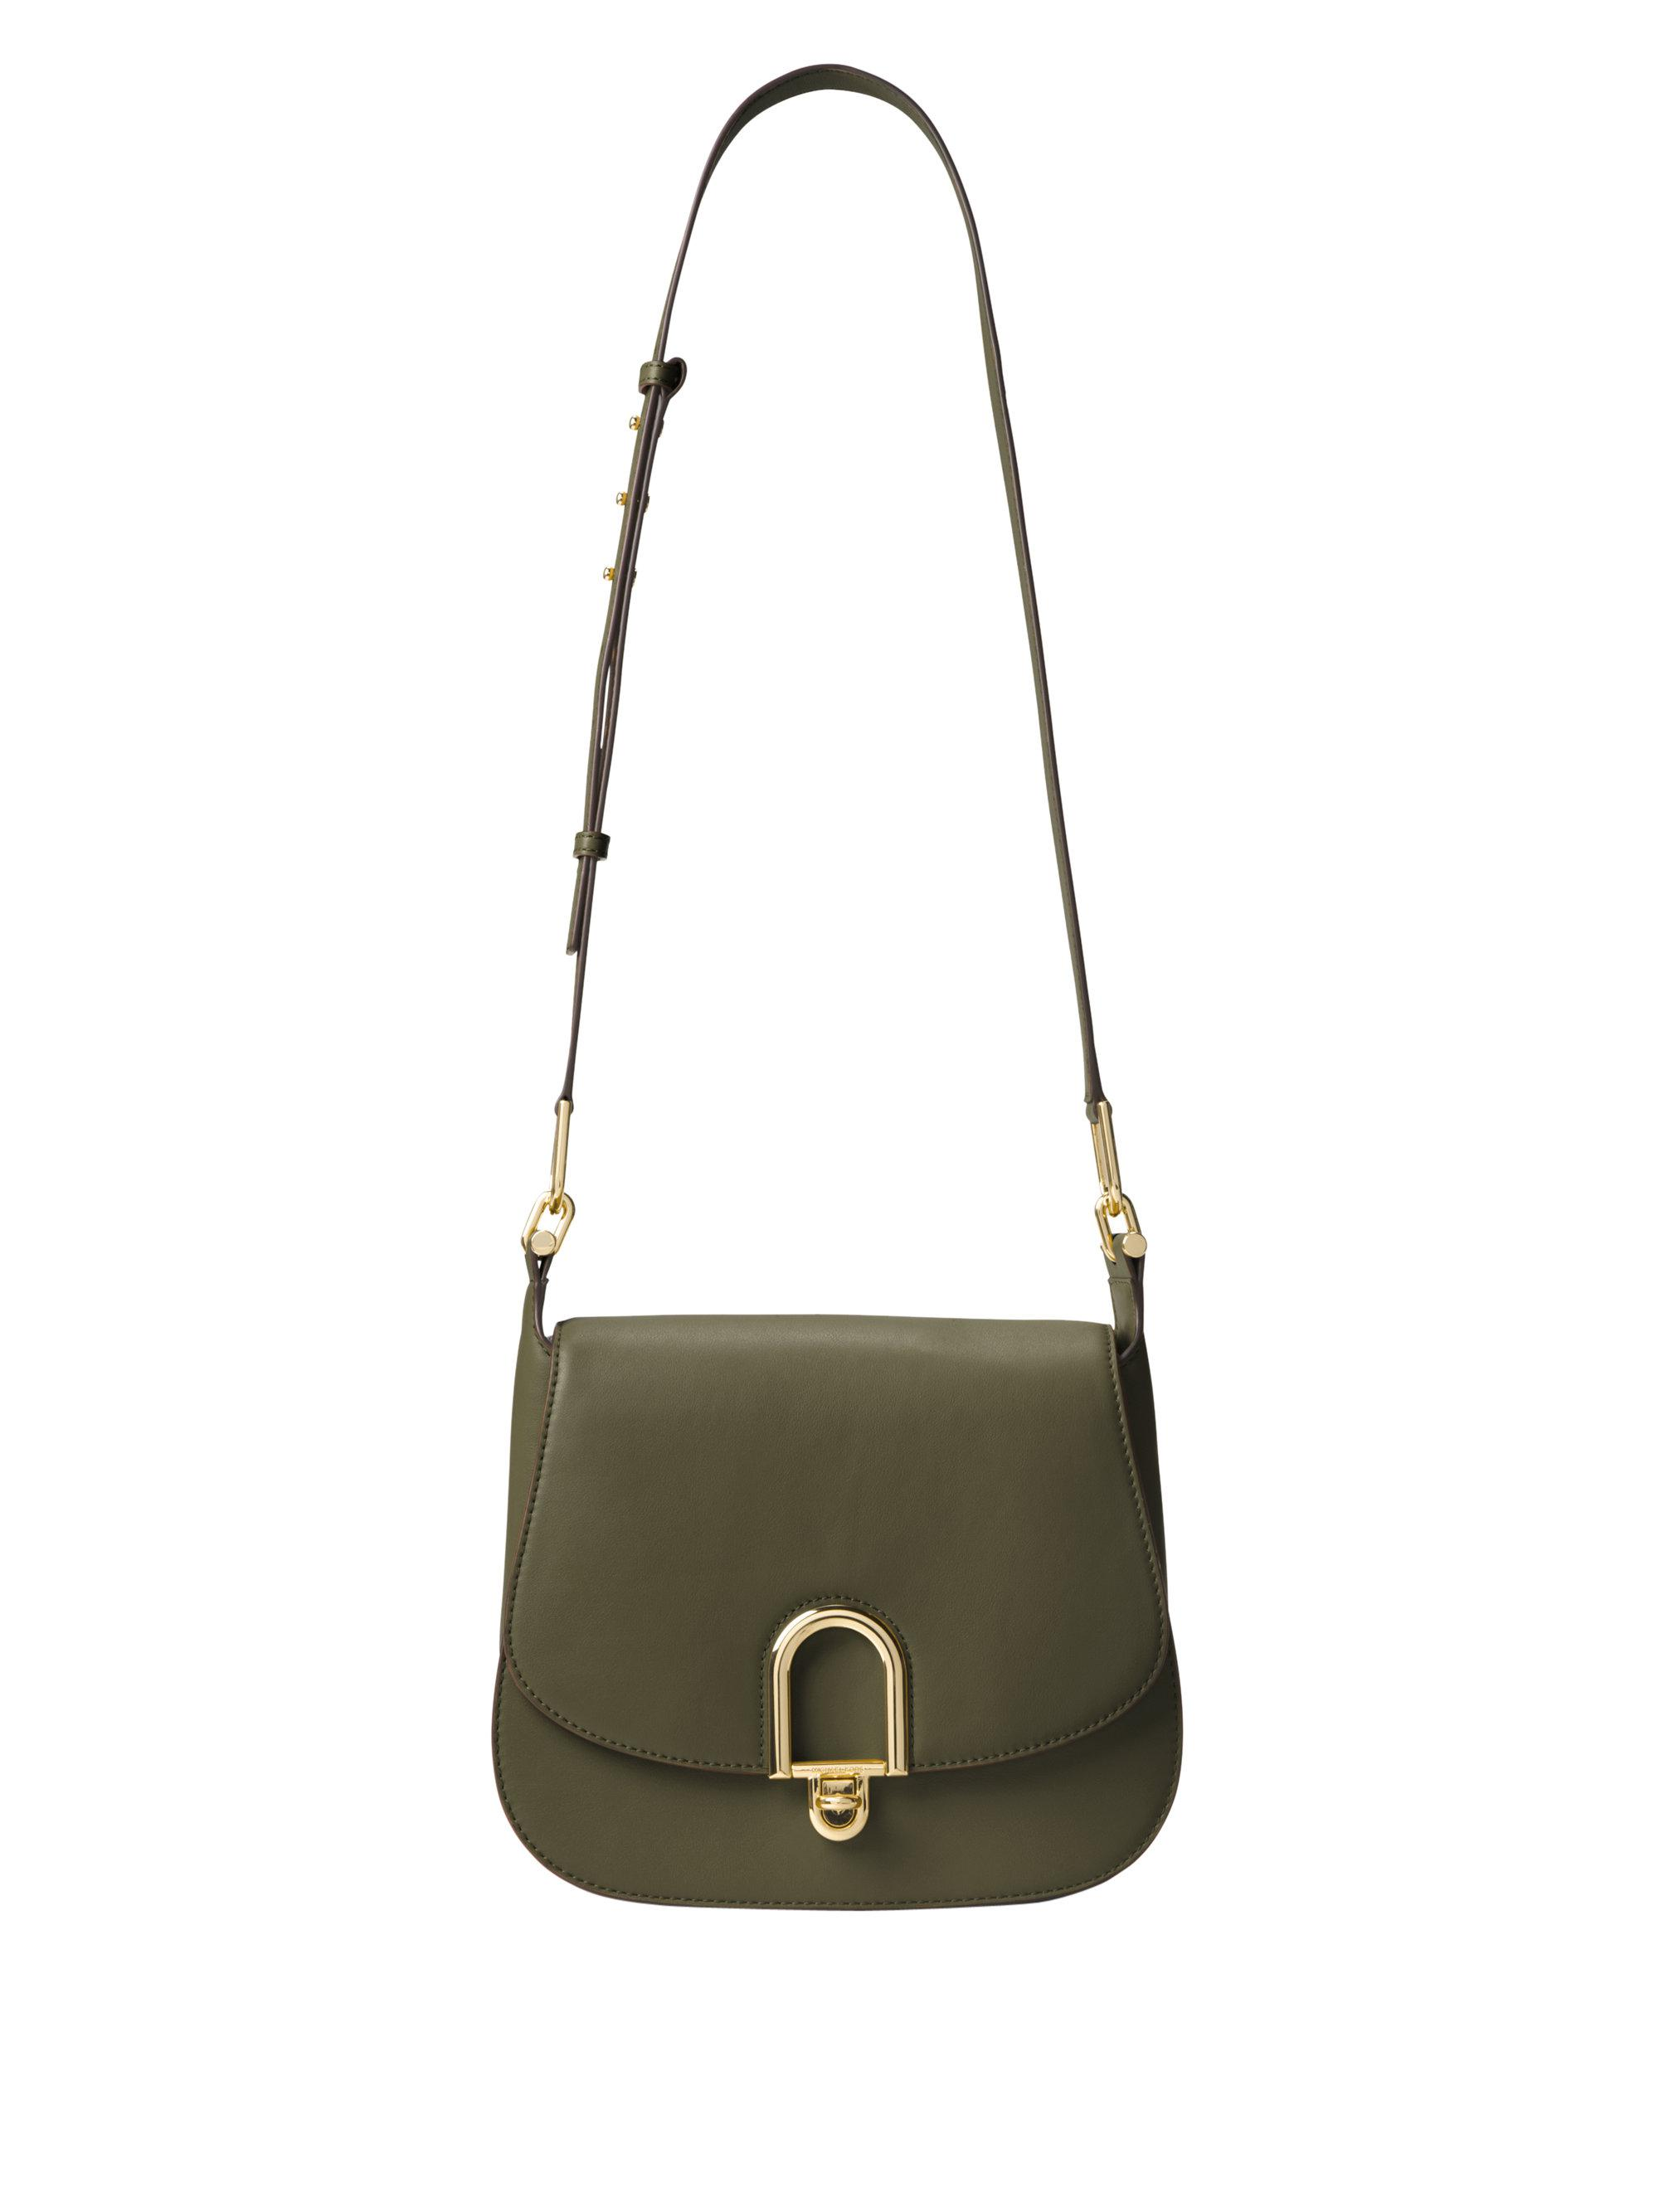 961848802589 MICHAEL Michael Kors Delfina Leather Saddle Bag in Green - Lyst